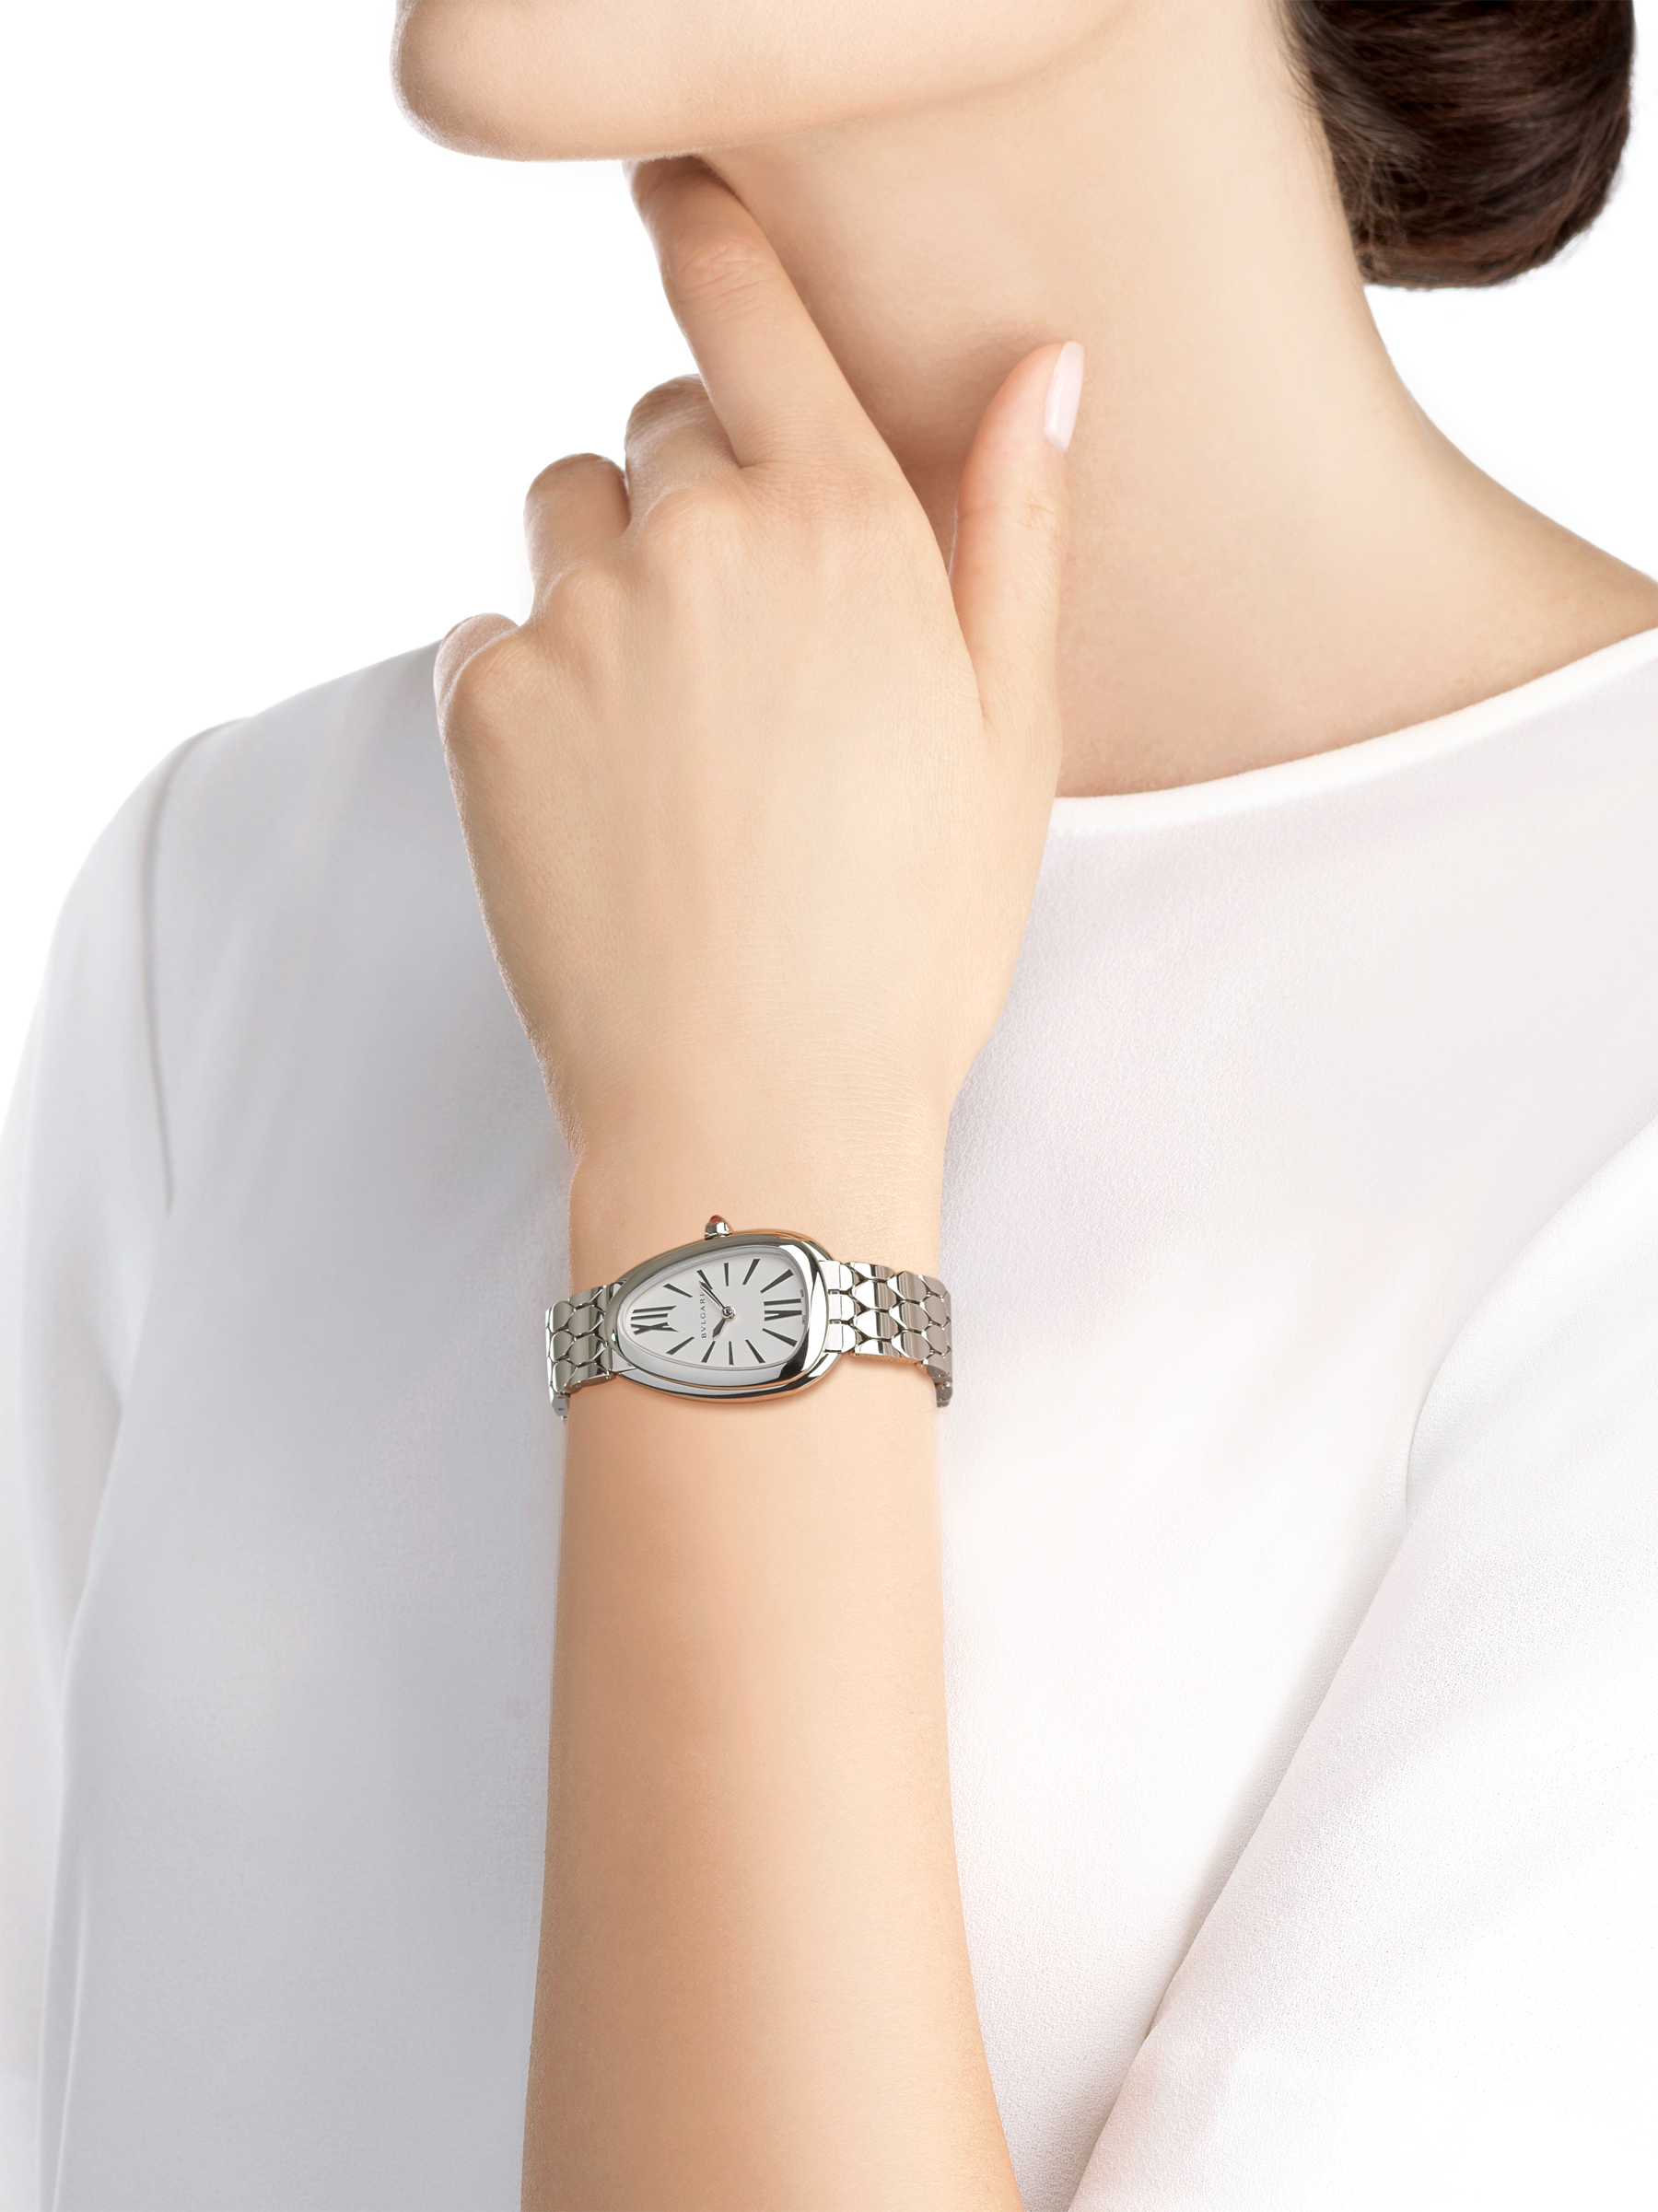 Serpenti Seduttori watch with stainless steel case, stainless steel bracelet and a white silver opaline dial. 103141 image 4